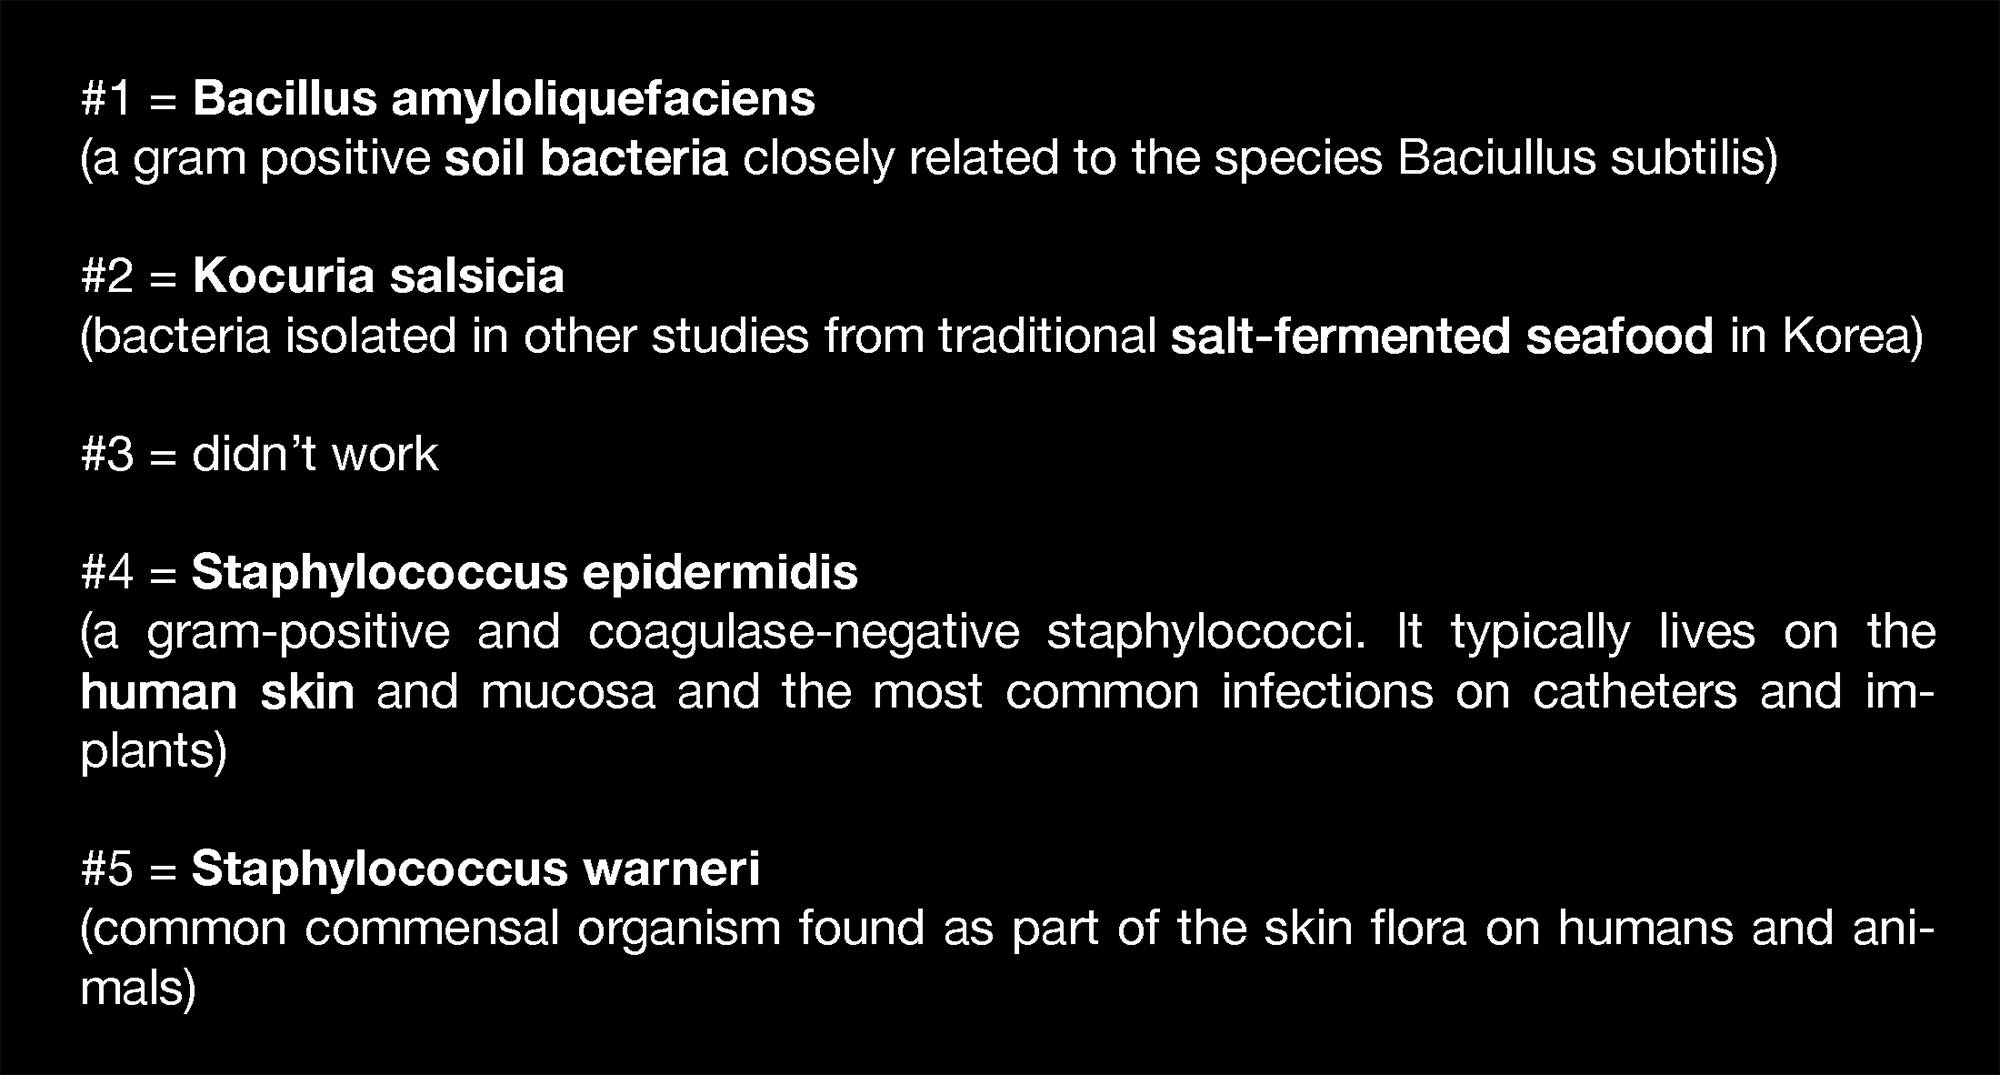 Specified bacterias